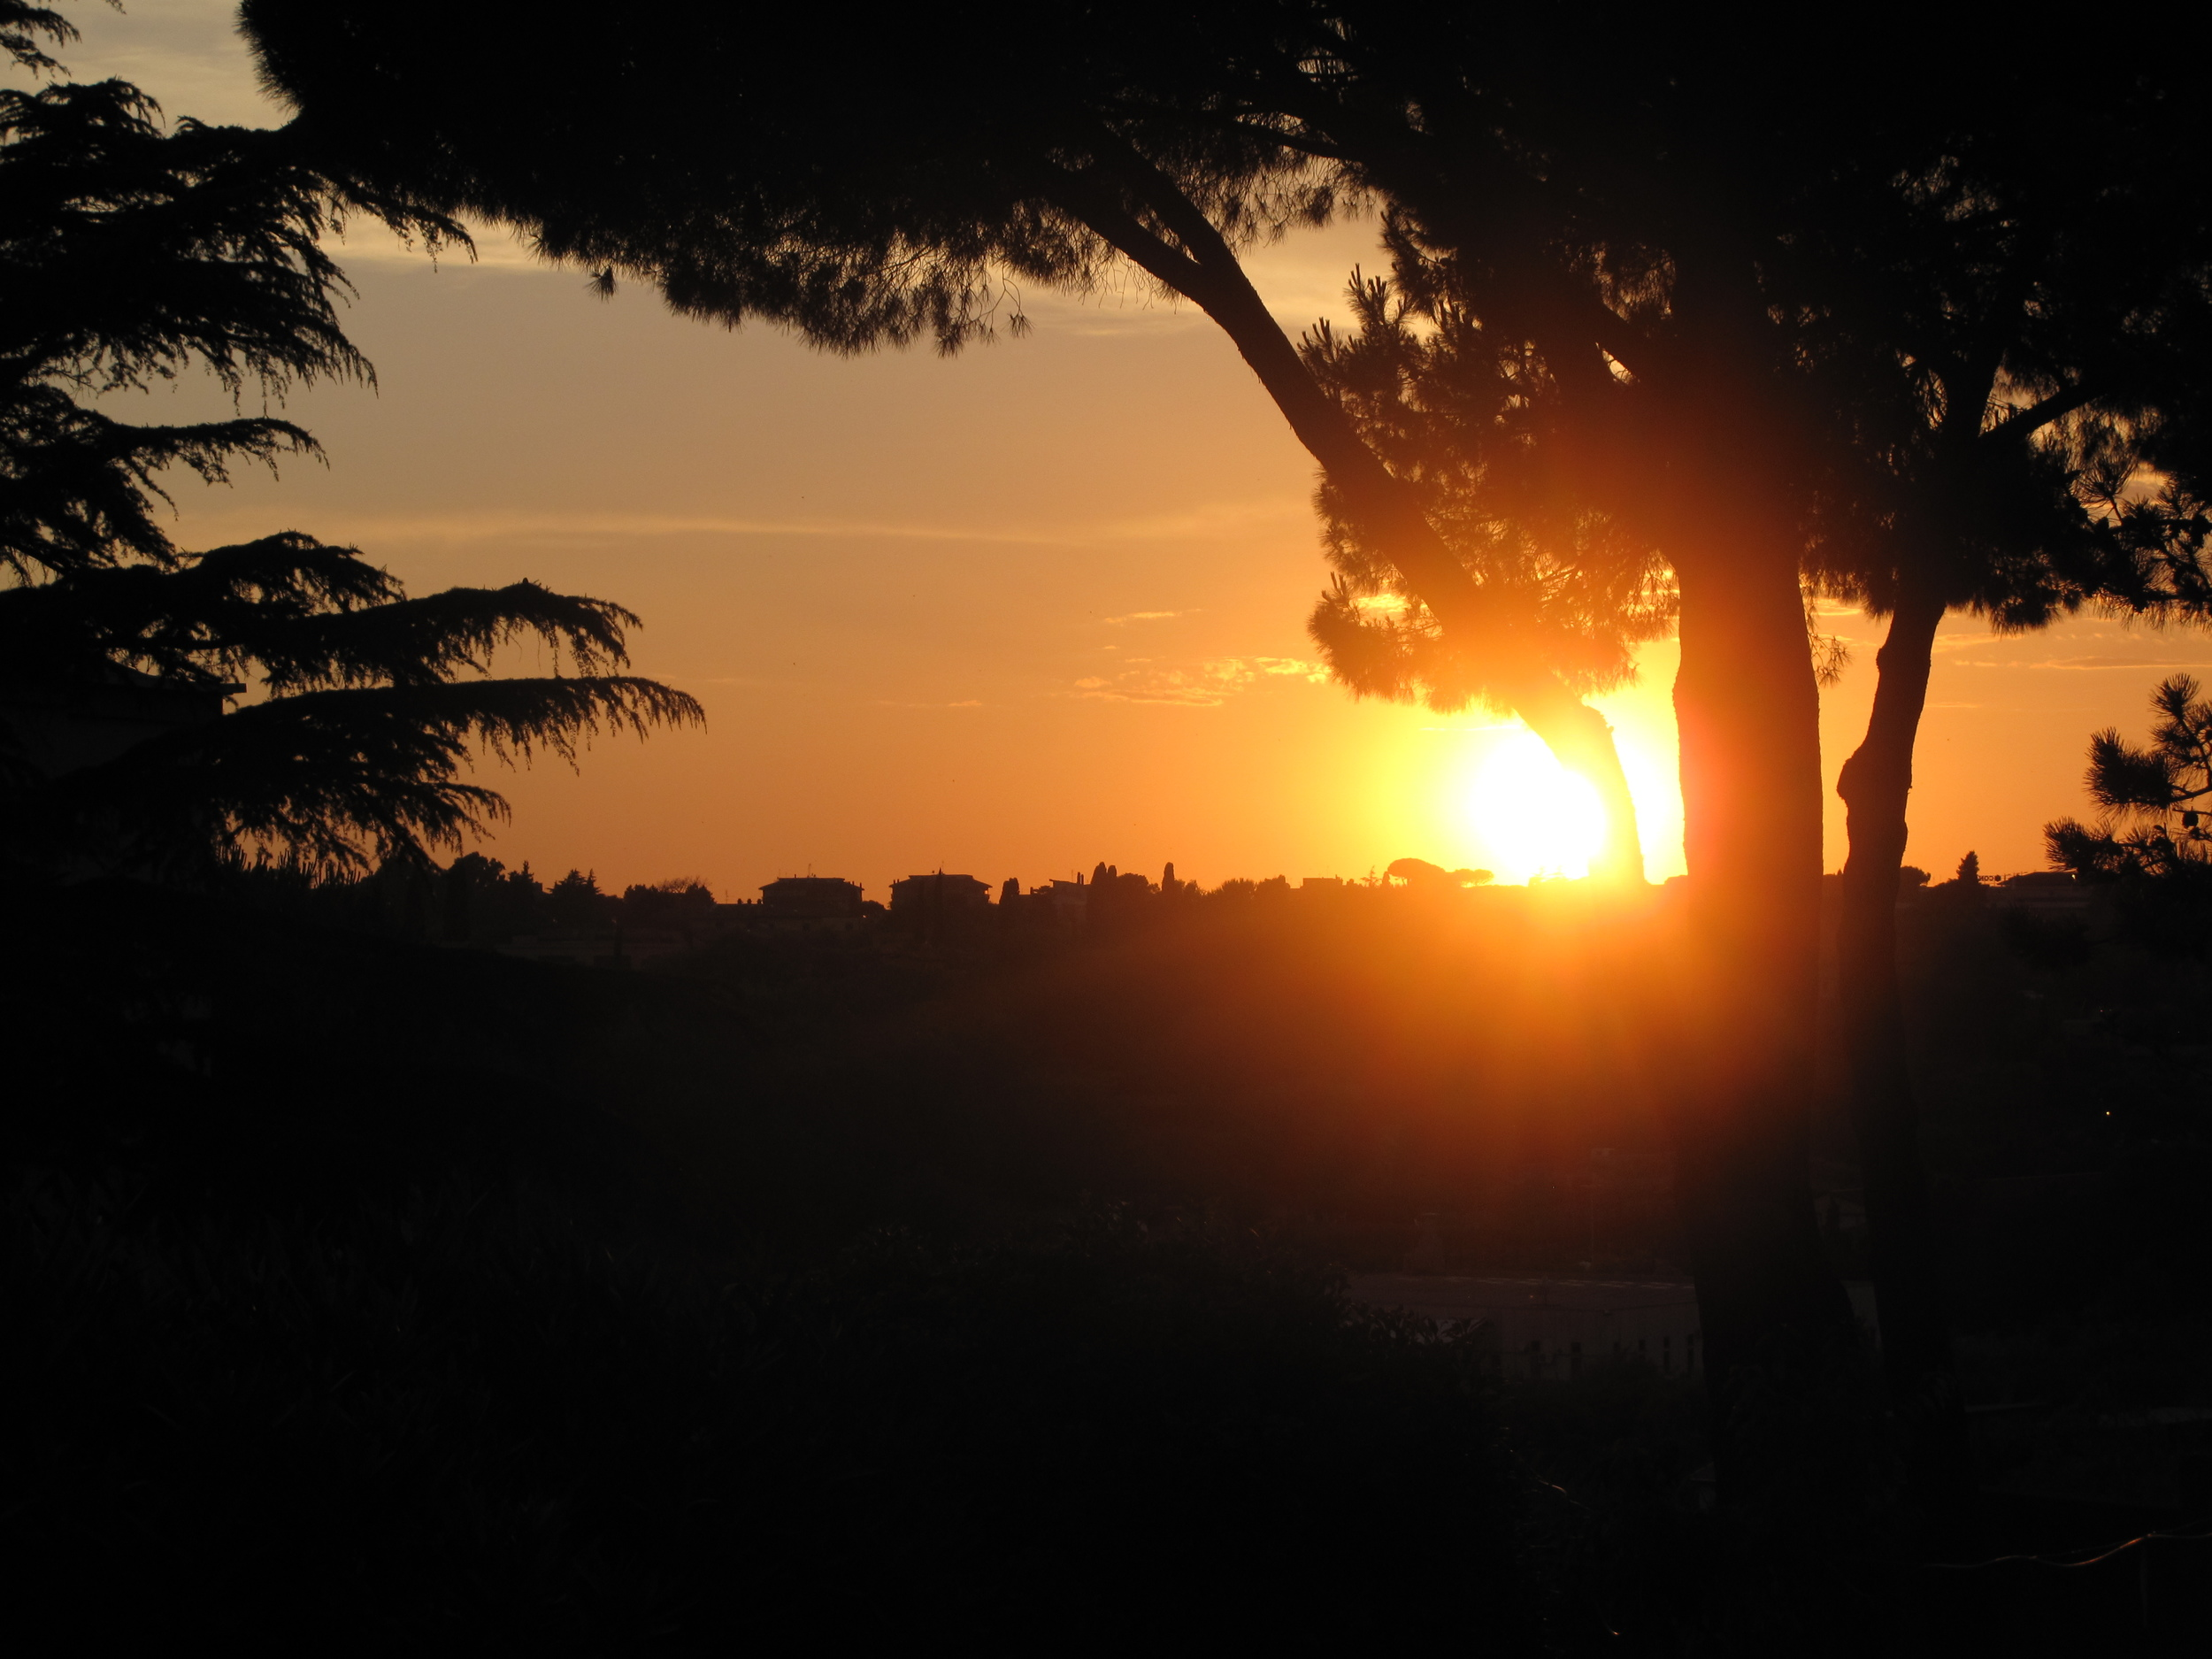 Sunset in Rome over a nunnery and the trees